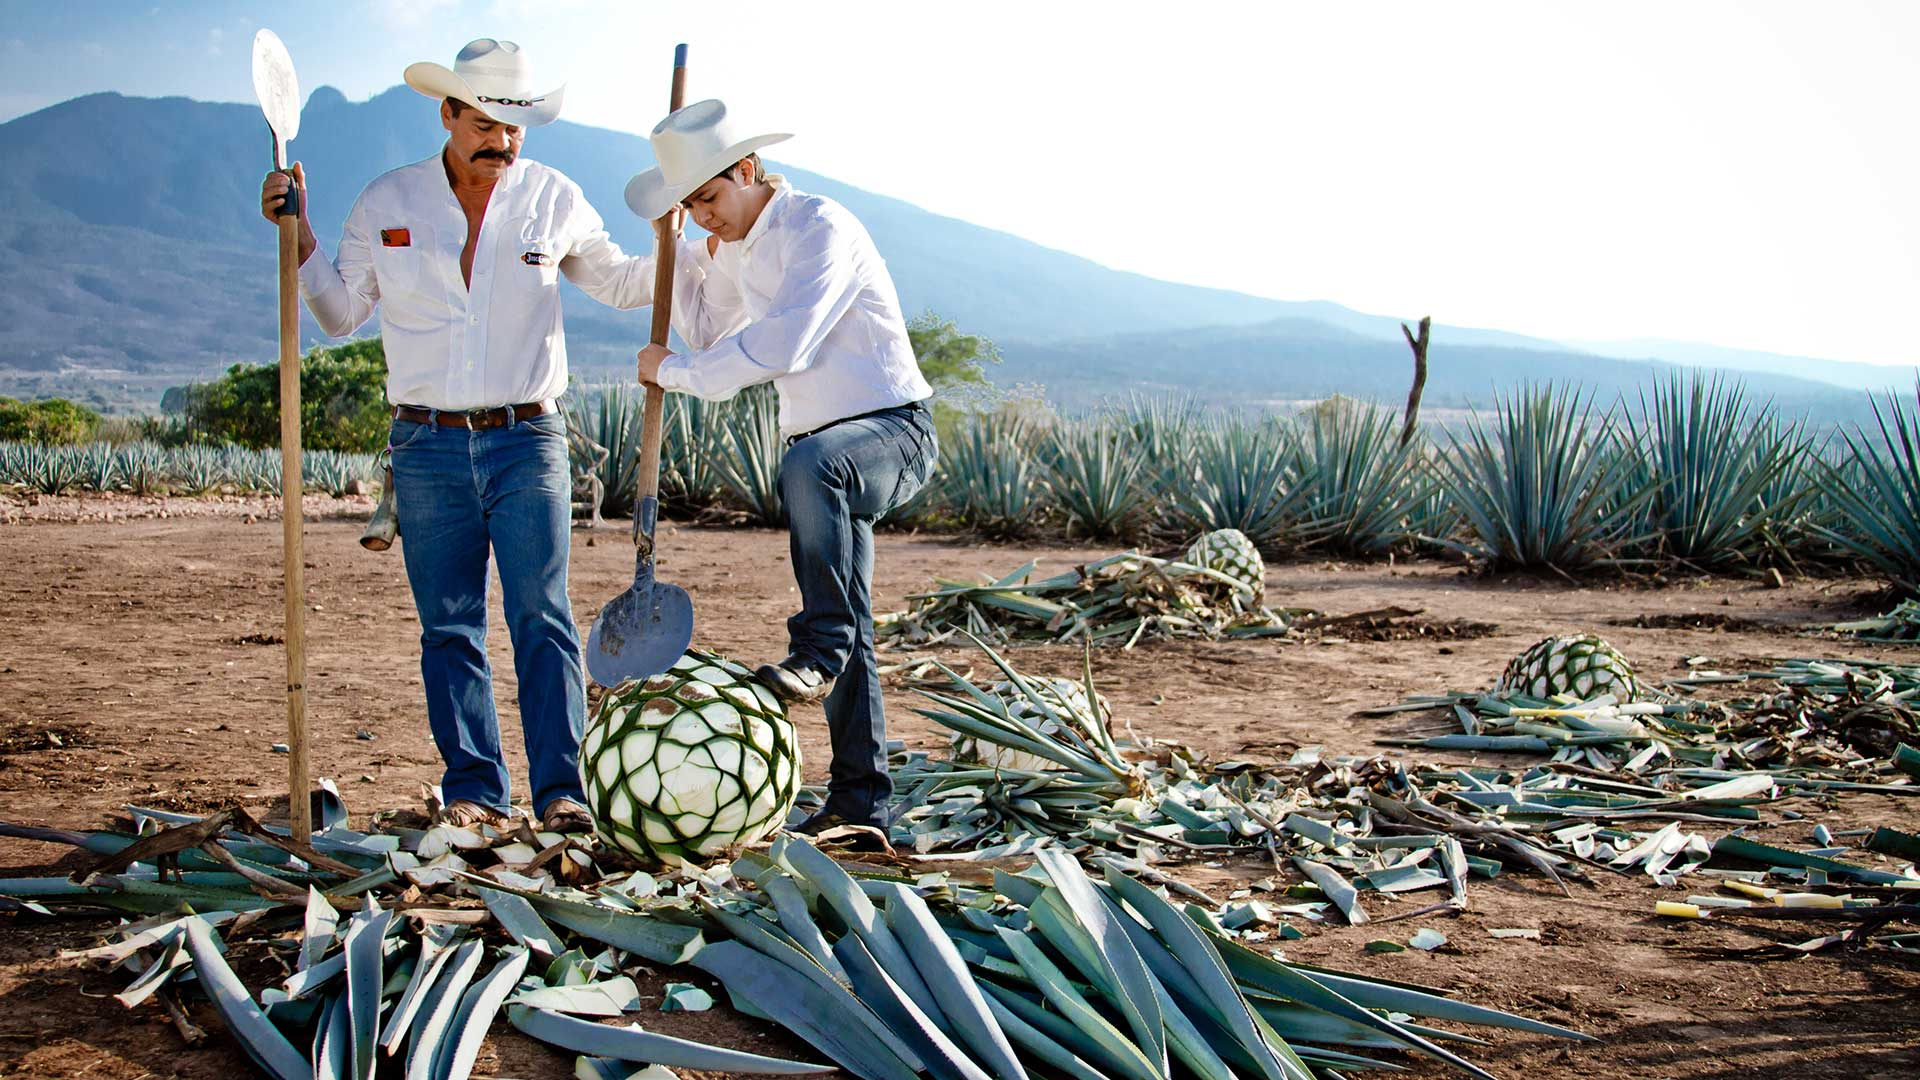 Working in the fields with agave plants before making tequila, Mexico